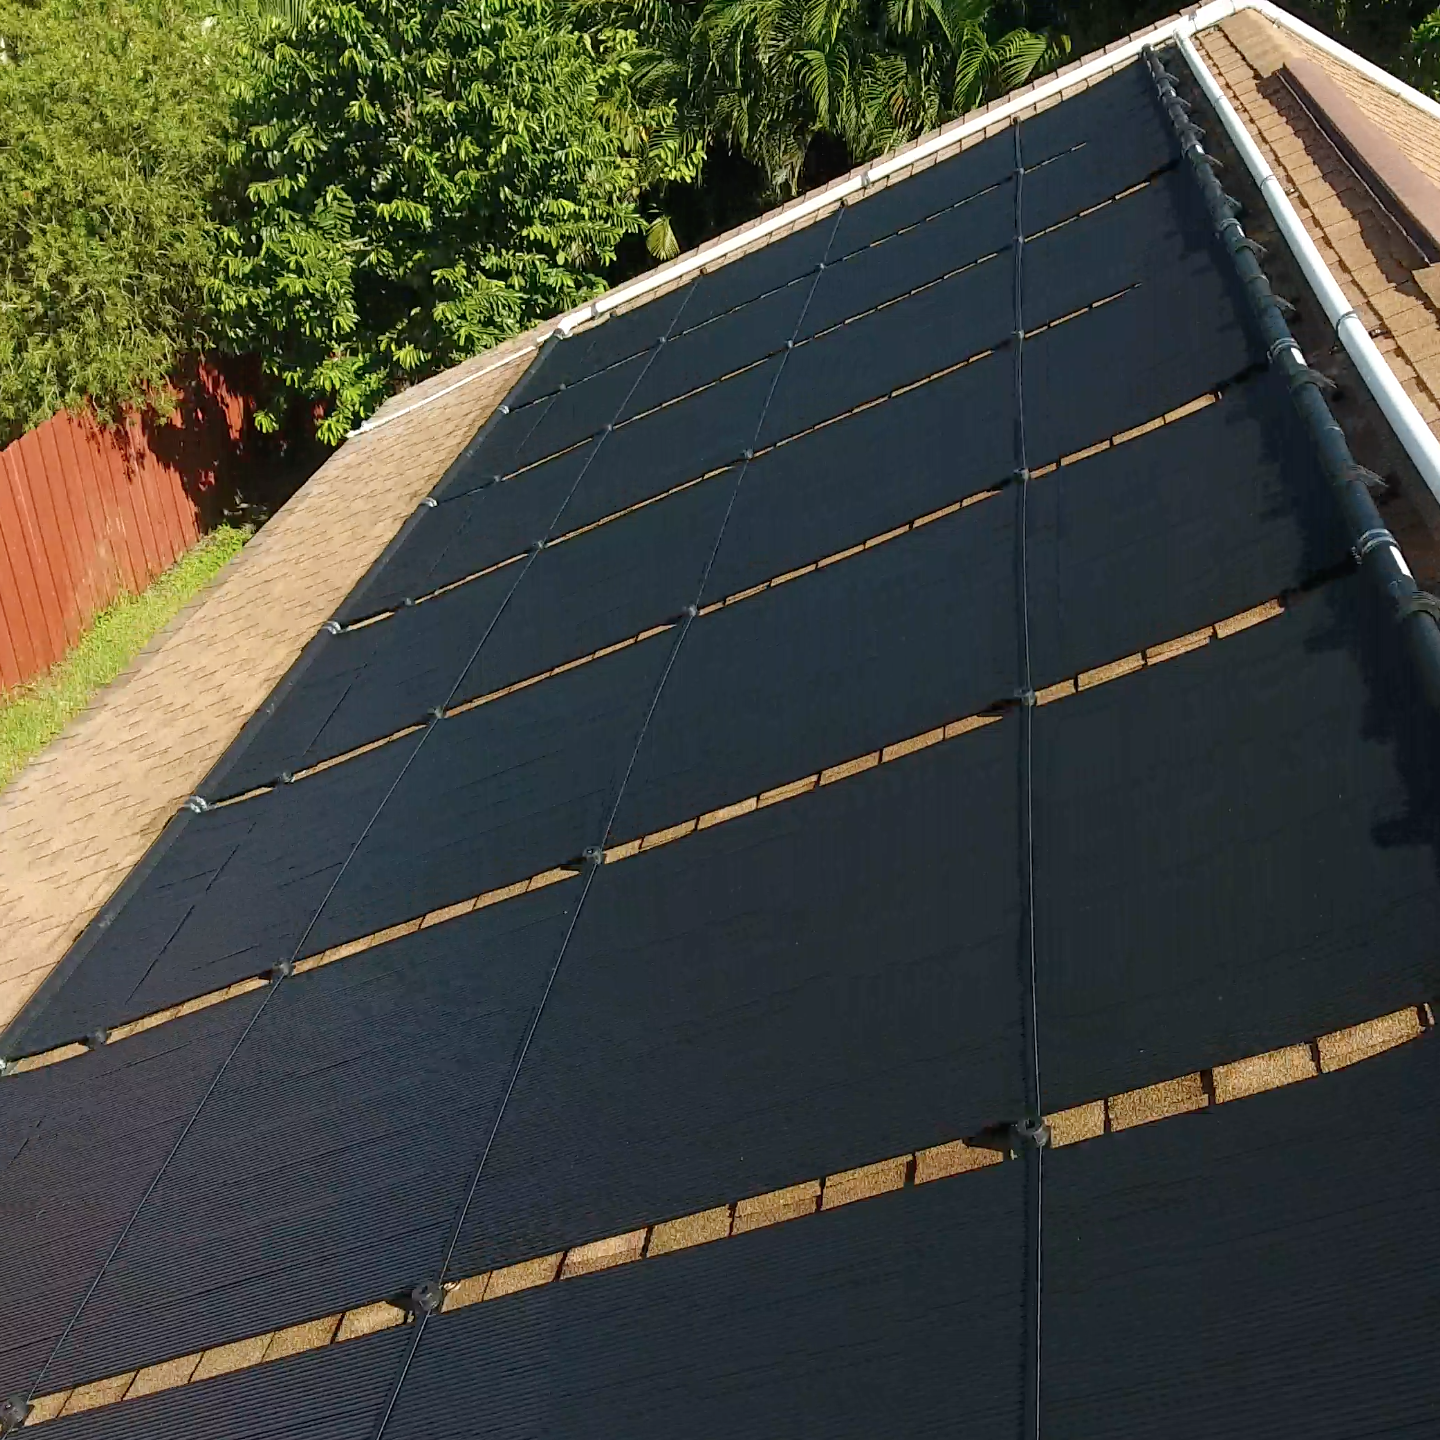 Solar Heated Water From Pool Jets Is Not Hot - Florida Solar Design